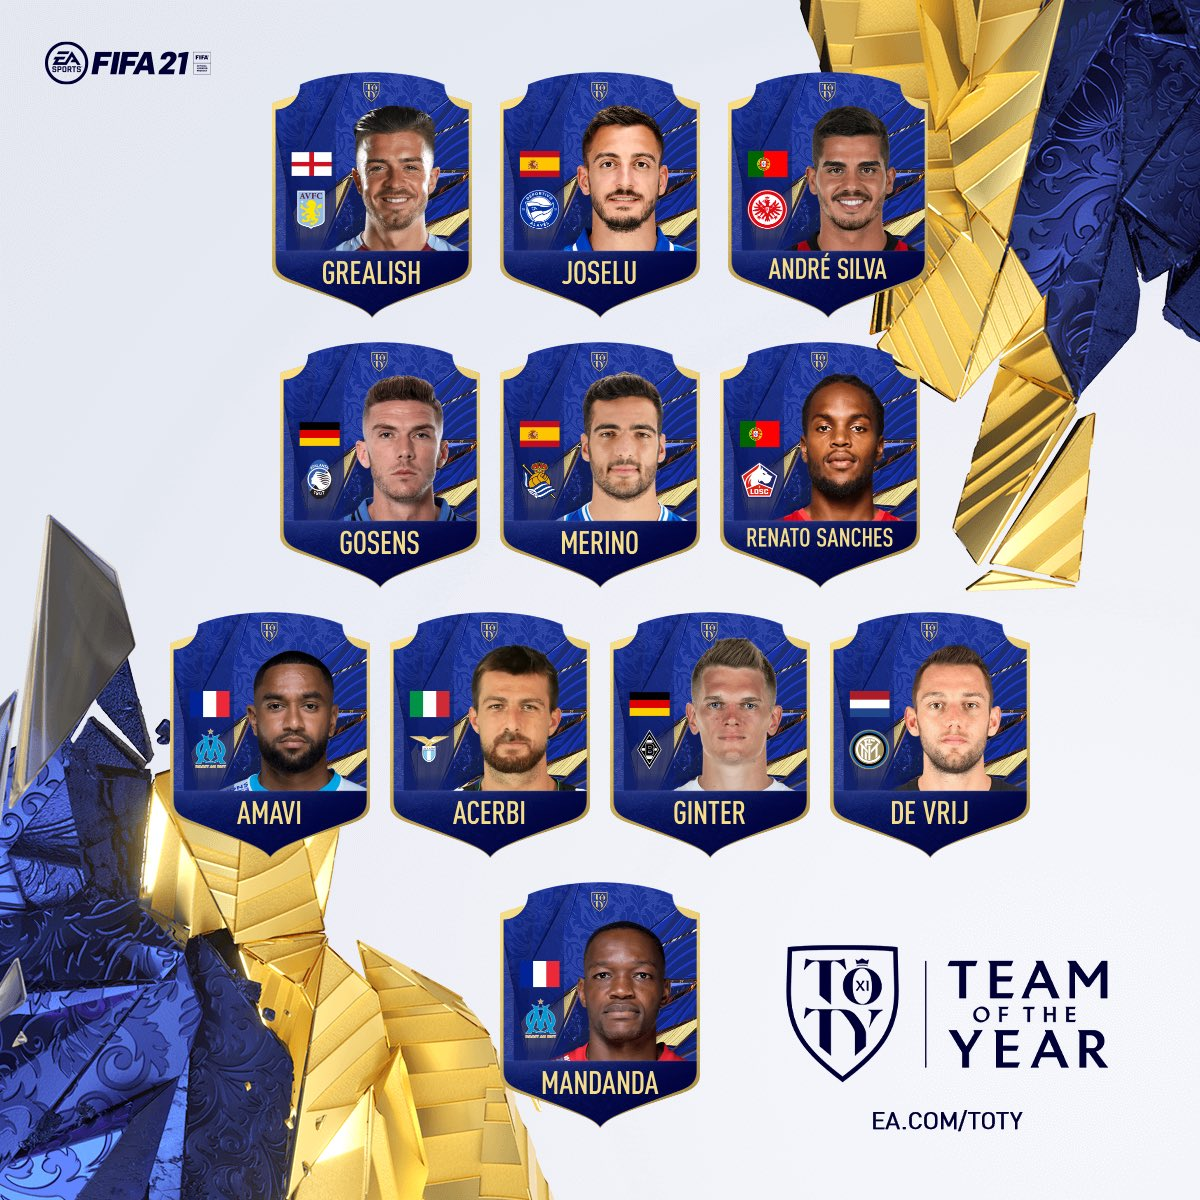 Rectification #TOTY